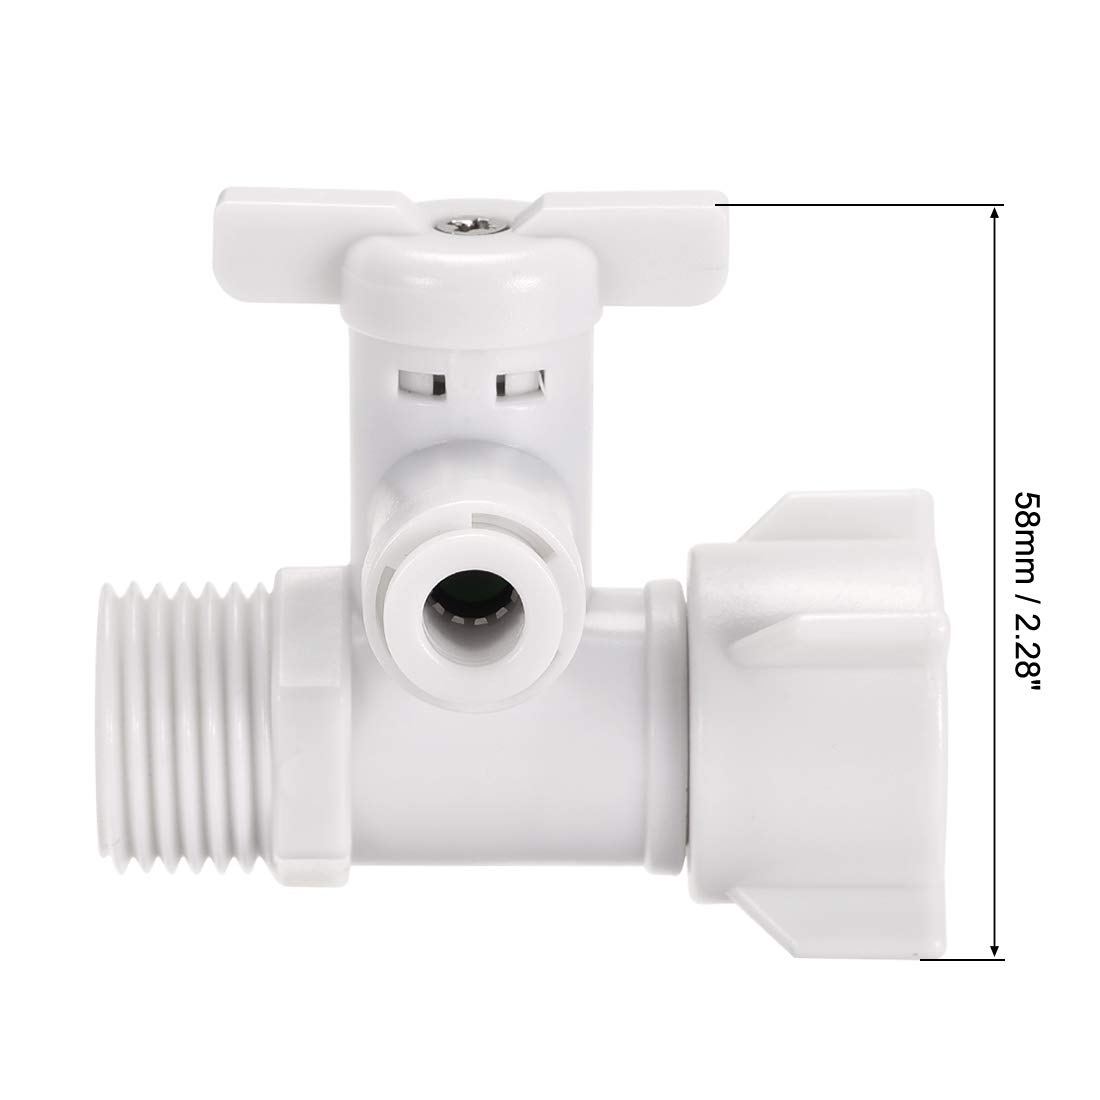 sourcing map Angle Stop Adapter Valve Push-to-Connect 1//4 Tube Outer Diameter G1//2 Male to Female Thread for Water Purifiers White